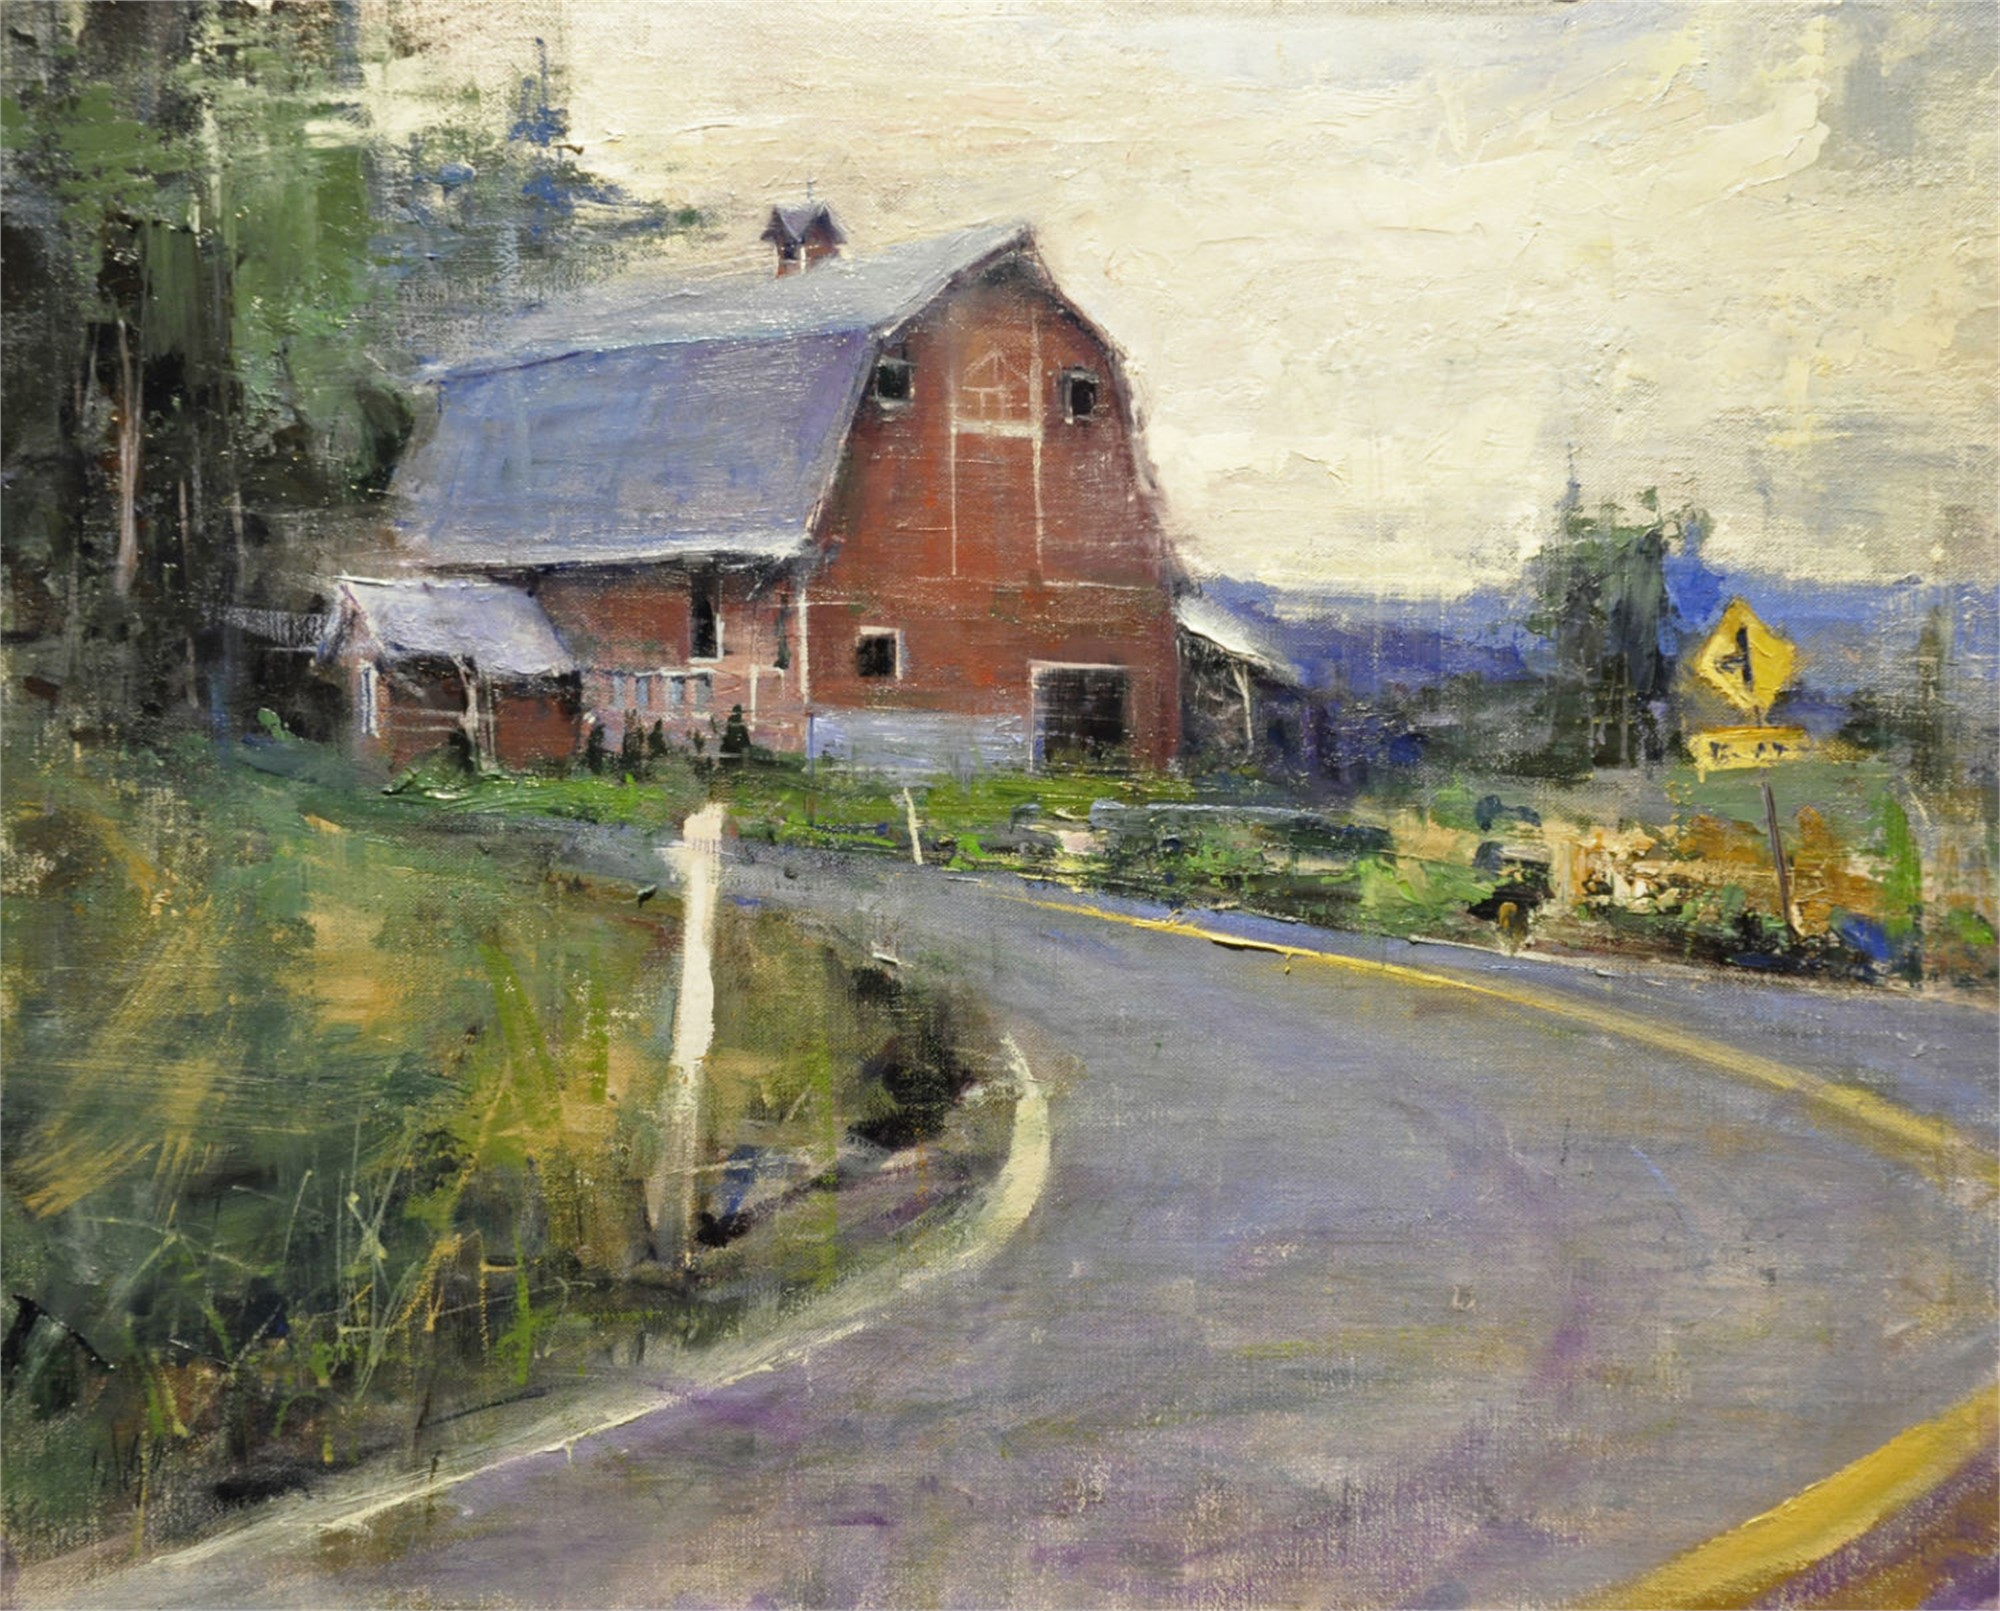 Larimer Road Farm by Mike Wise